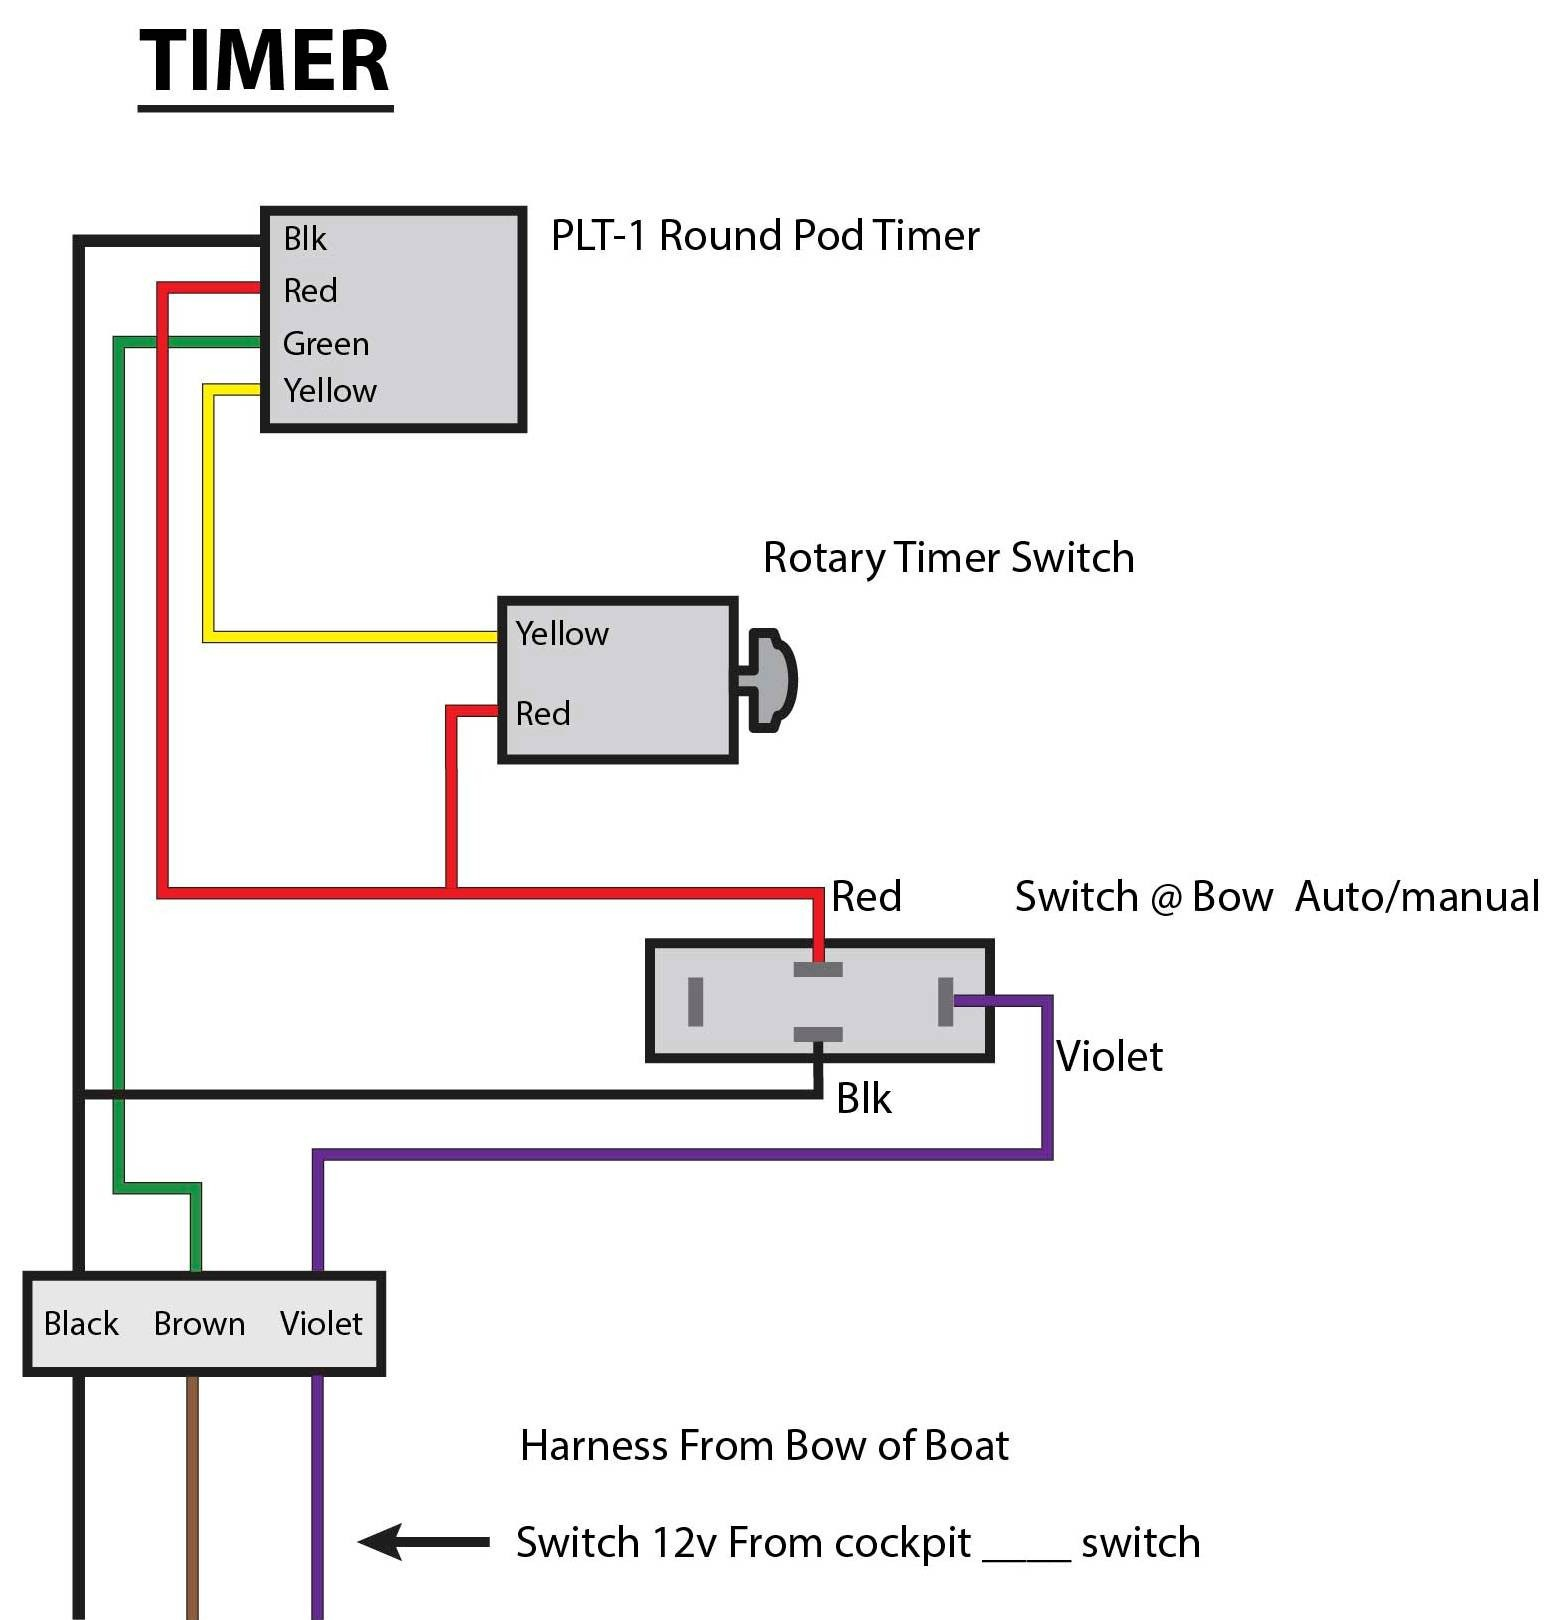 Wiring Diagram Hand f Auto Switch Refrence F Beautiful Rotary